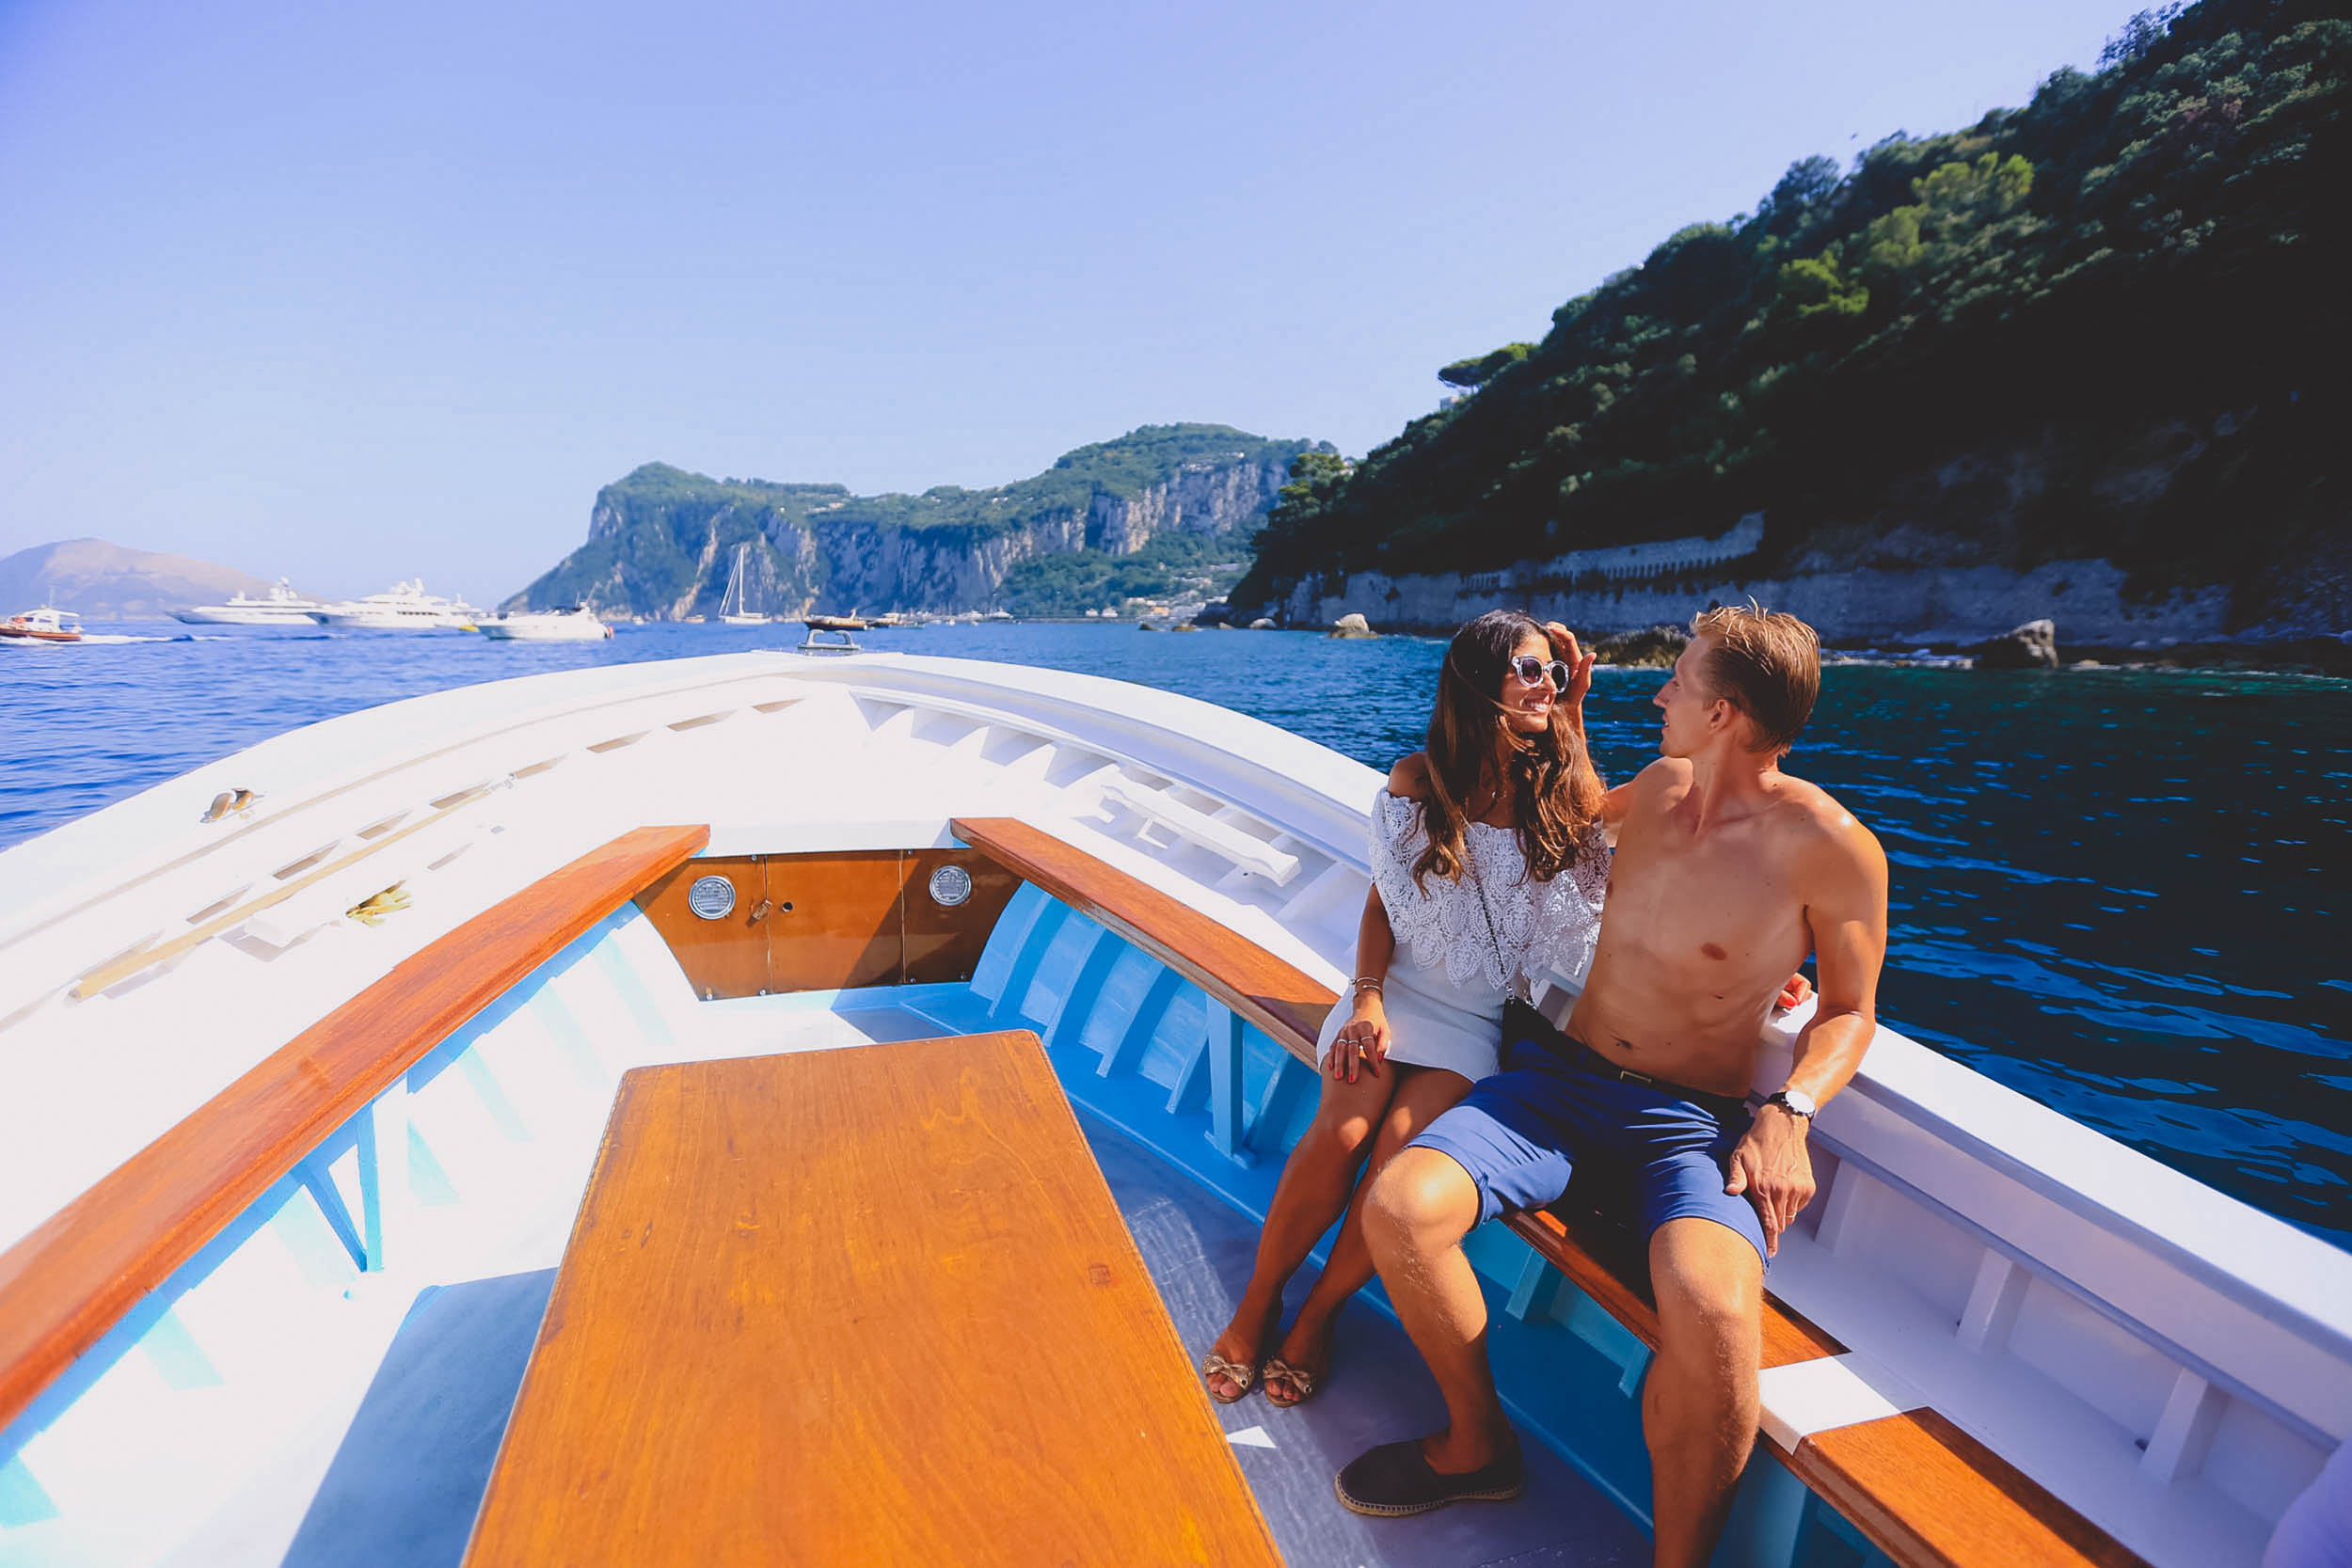 Exploring the Capri coastline by boat is a must-do activity